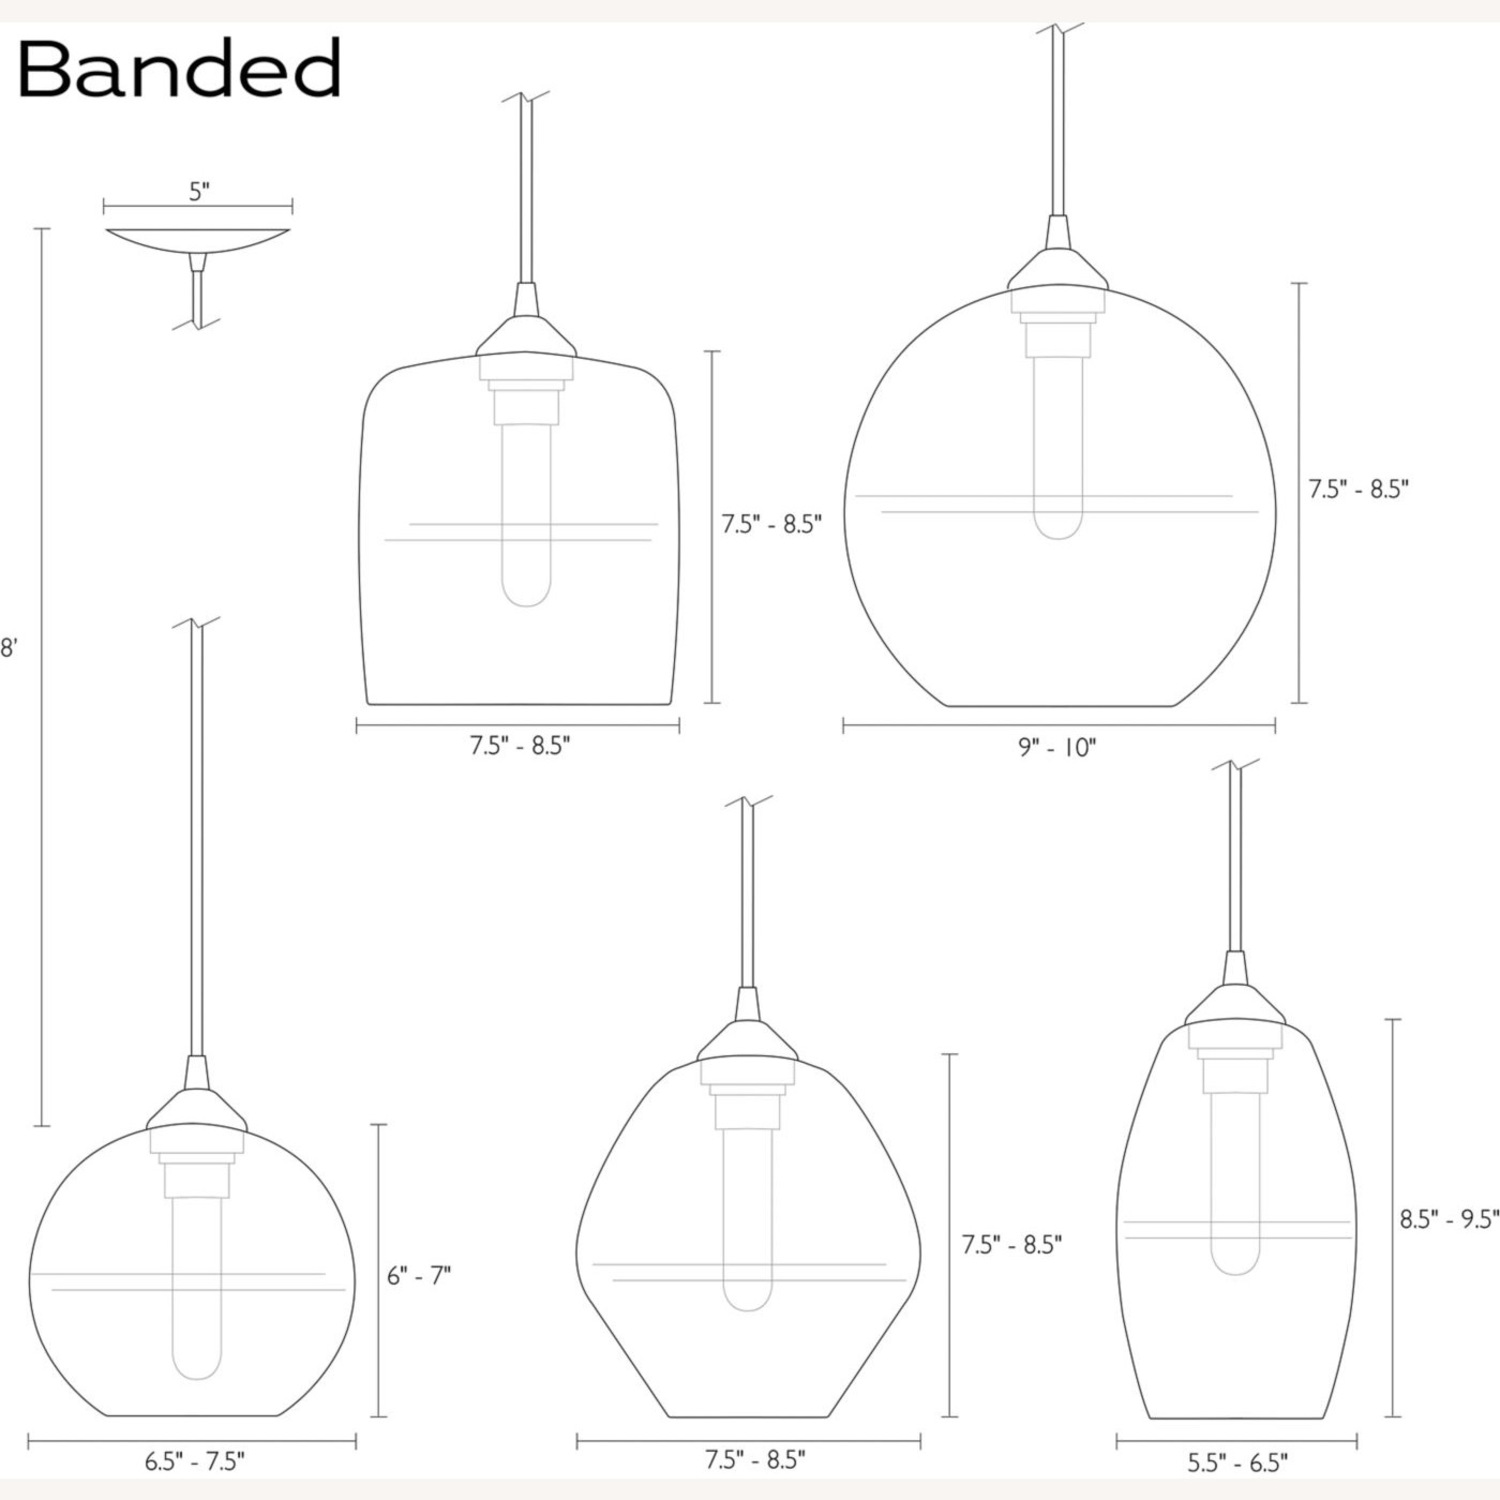 Room and Board Banded Pendant Light (1) - image-3